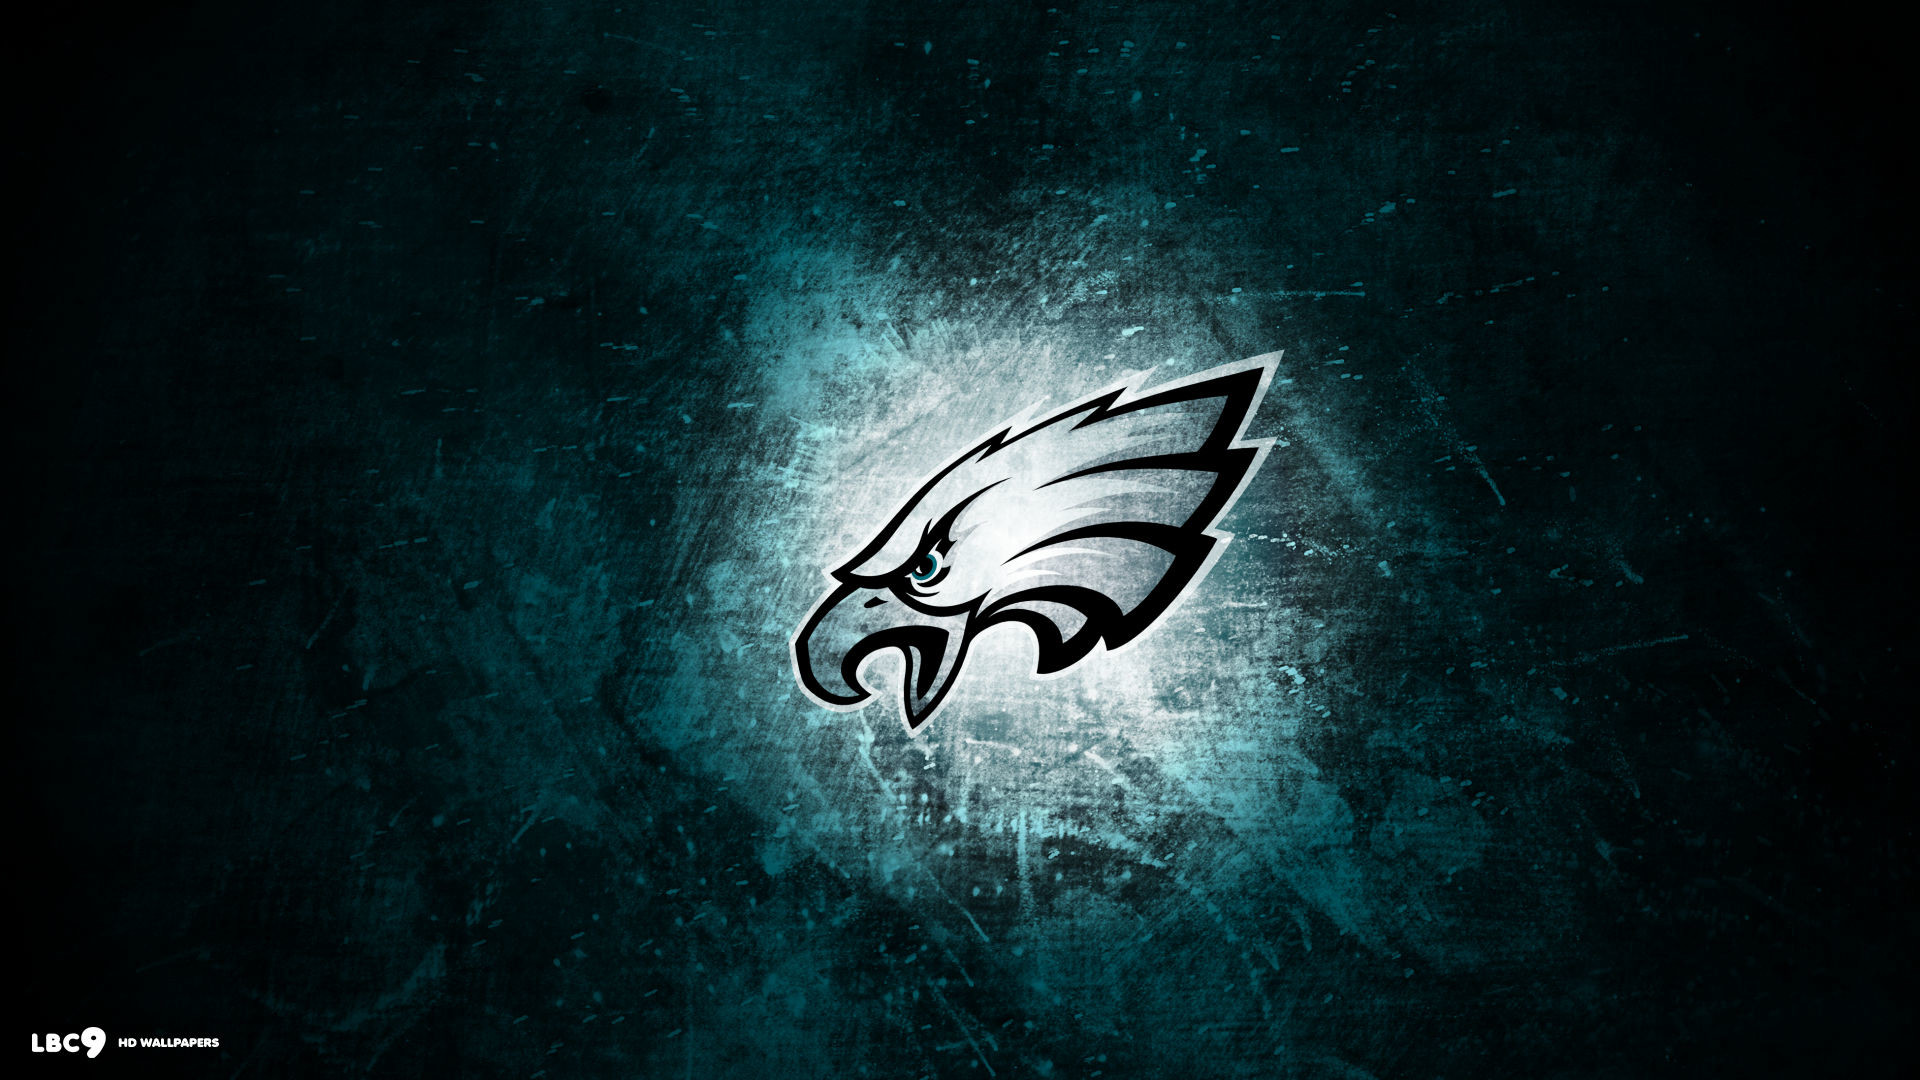 + images about Philly boy on Pinterest Stop signs, Bunker 1440×900 Free  Philadelphia Eagles Wallpapers   Adorable Wallpapers   Desktop   Pinterest  …